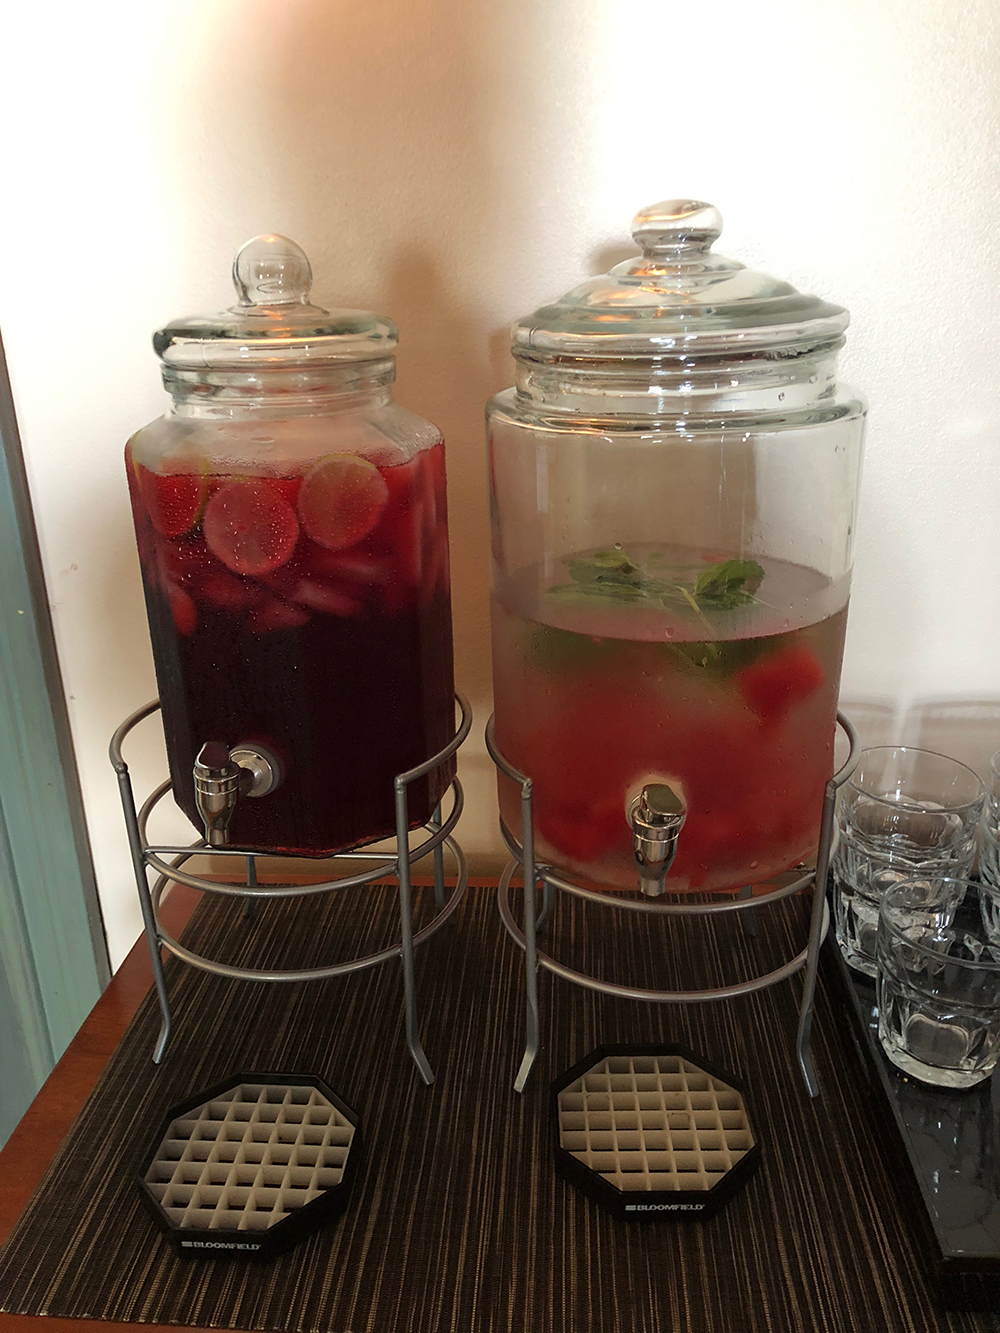 Drinks offered include pomegranate tea and watermelon-infused water.